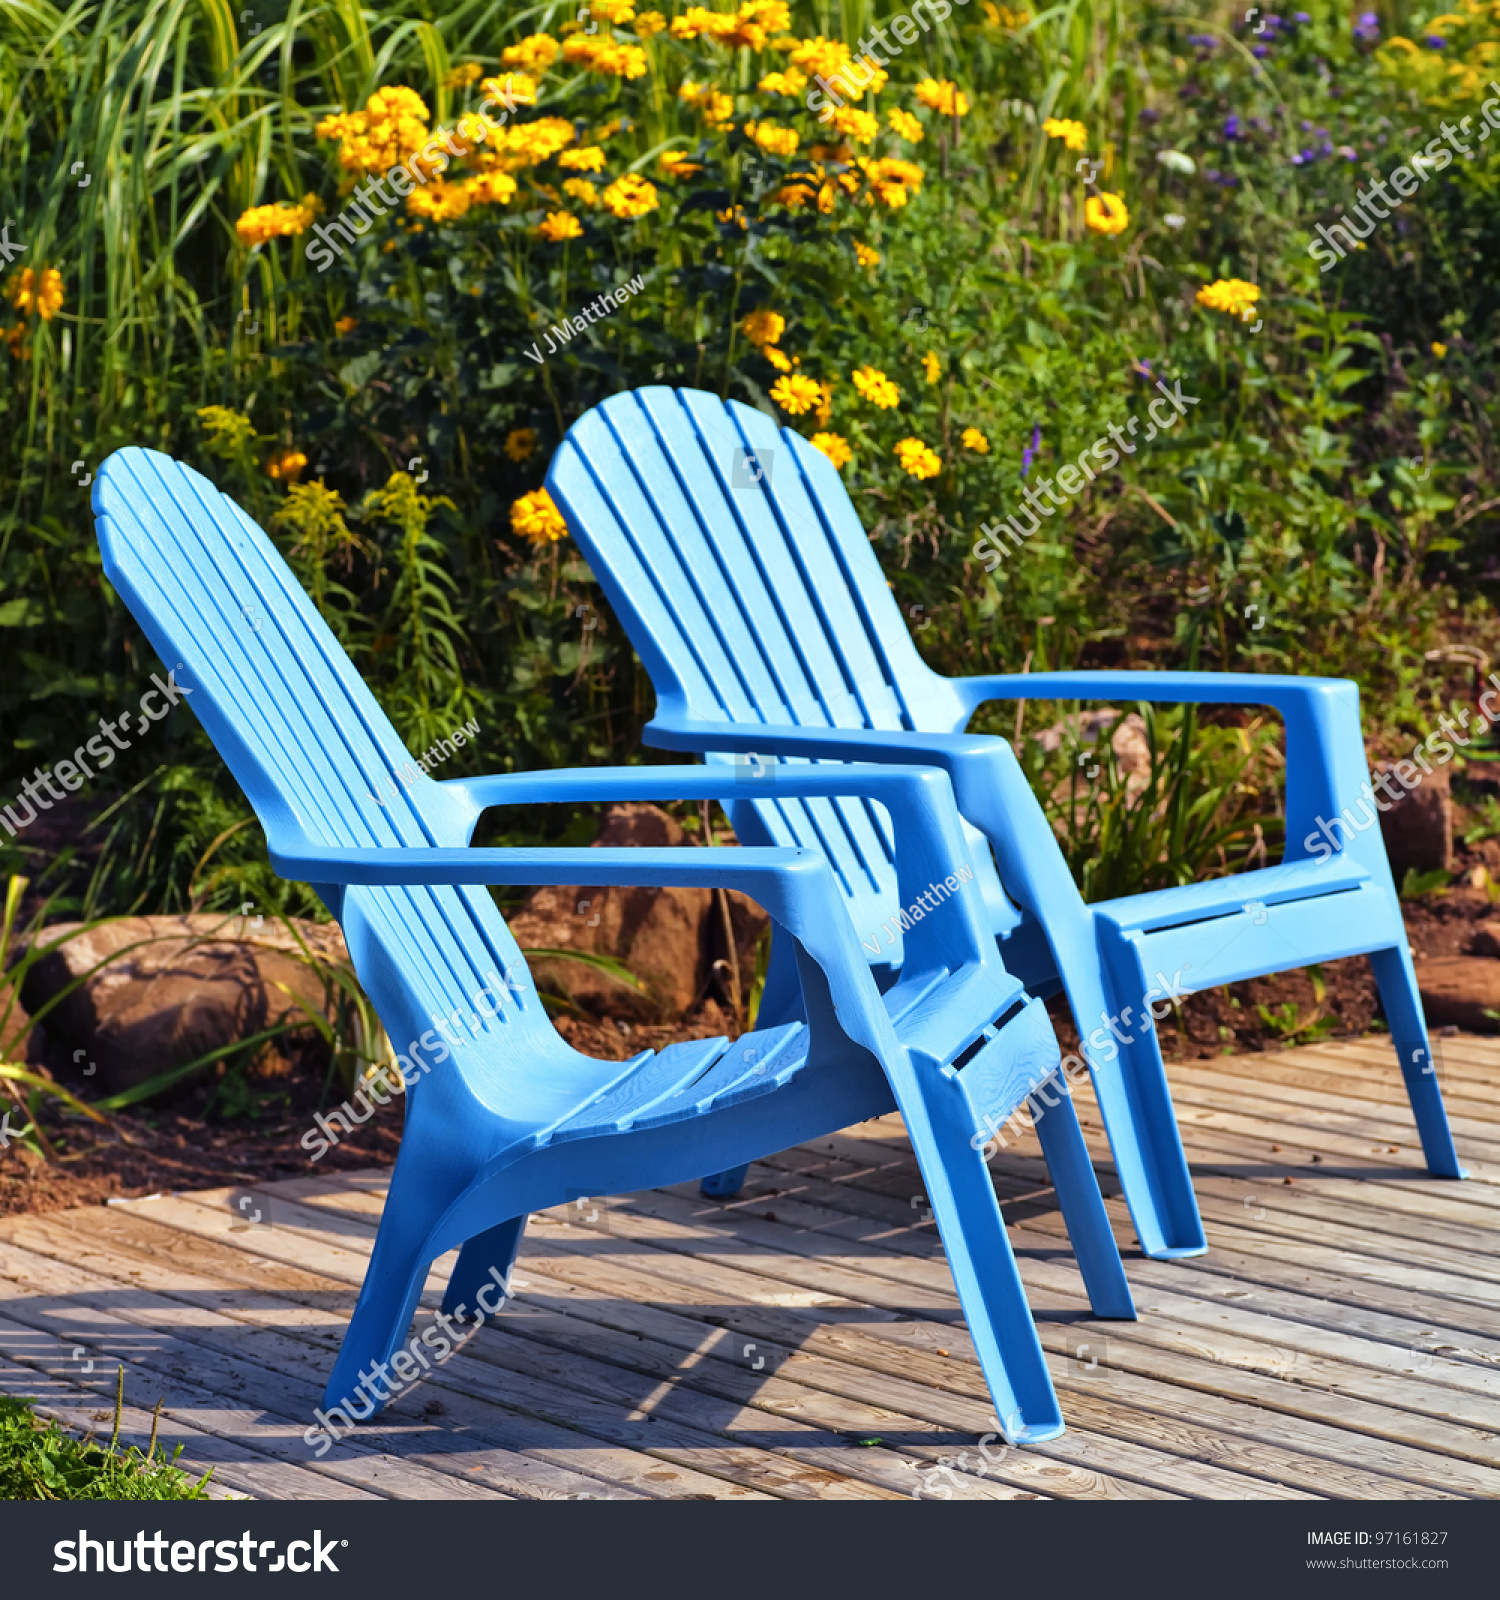 Exceptionnel Brilliant Blue Plastic Outdoor Adirondack Chairs On The Deck In A Summer  Garden.